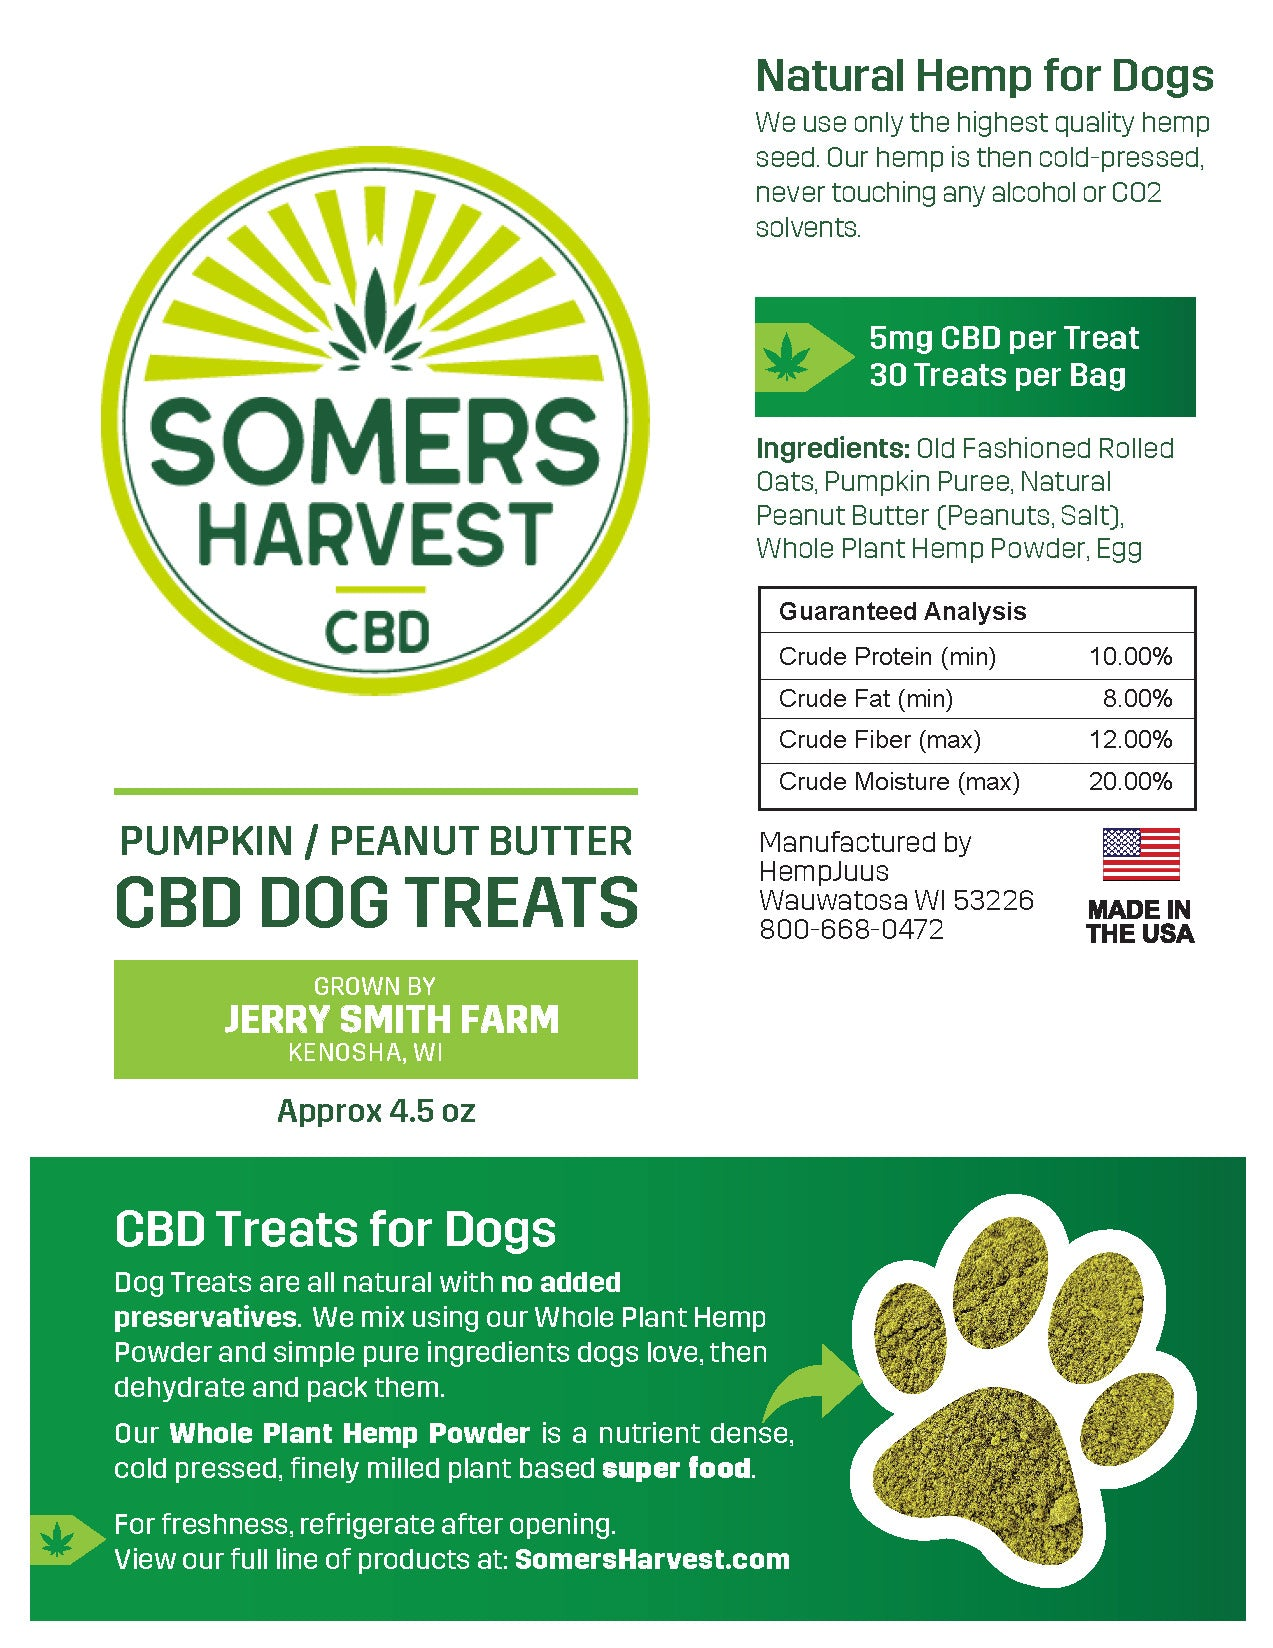 Somers Harvest Dog Treats Package Label